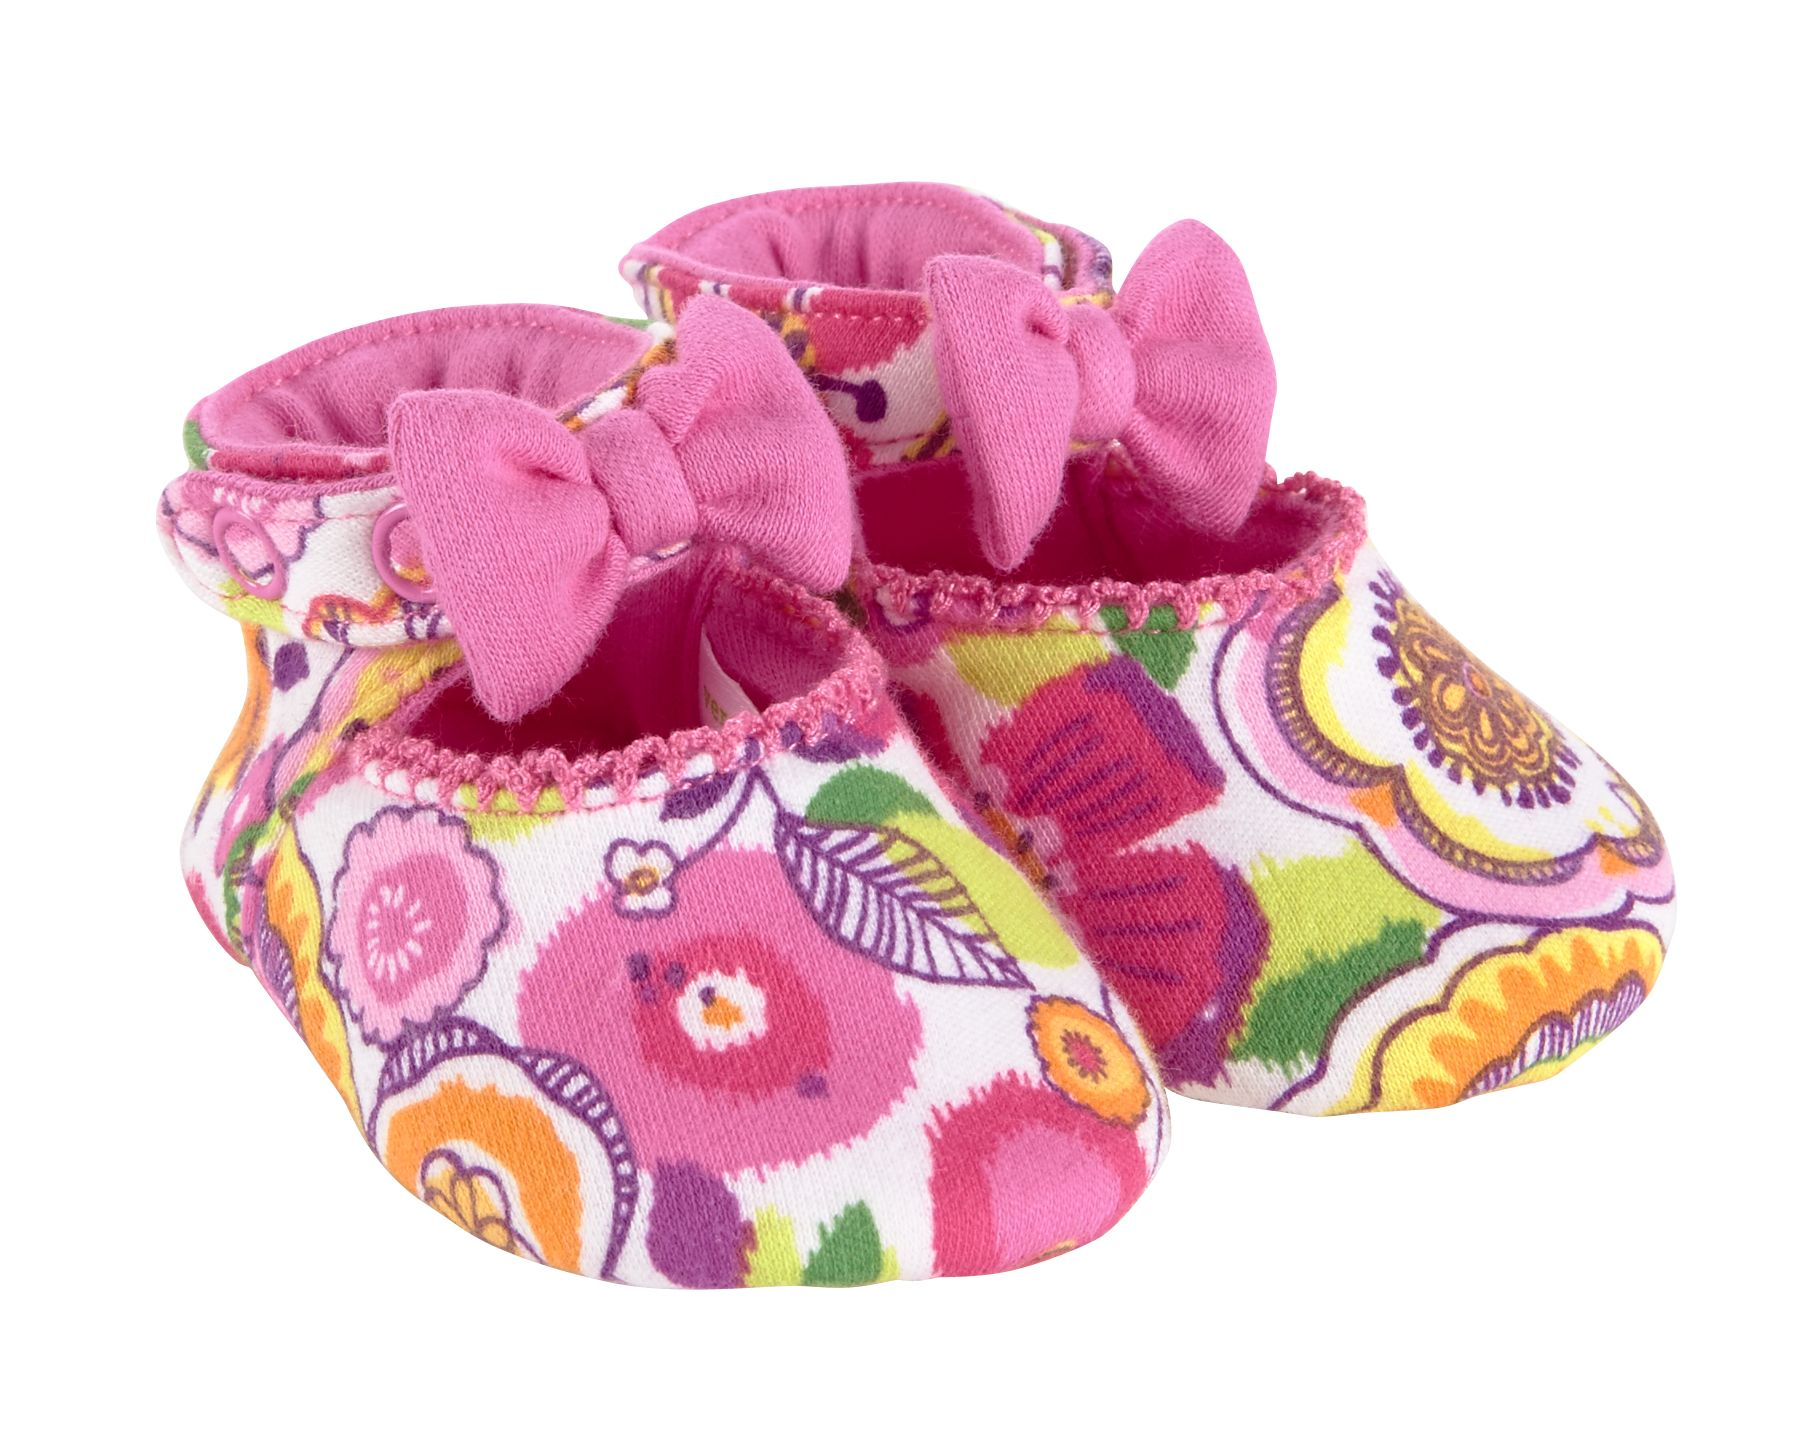 Vera Bradley Mary Jane Soft Shoes 0-6M in Clementine